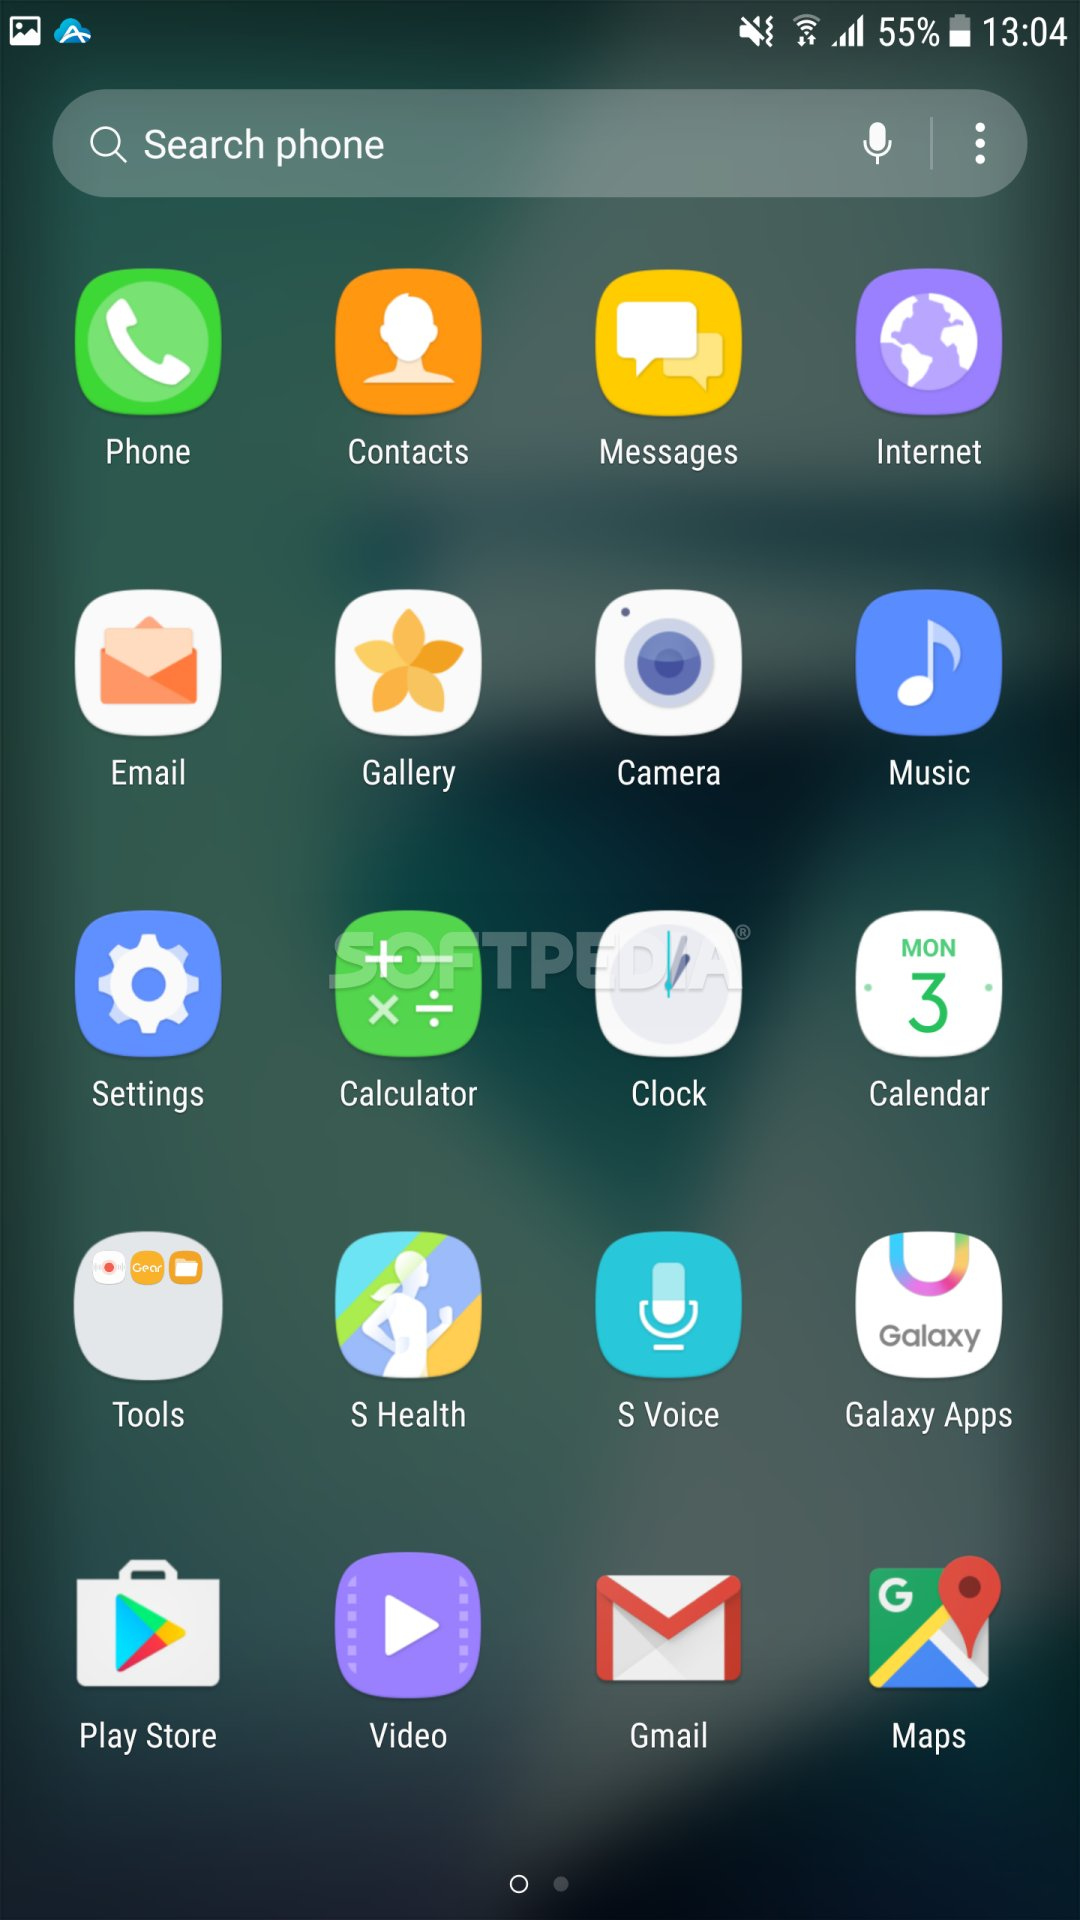 samsung launcher apk for android 2.3